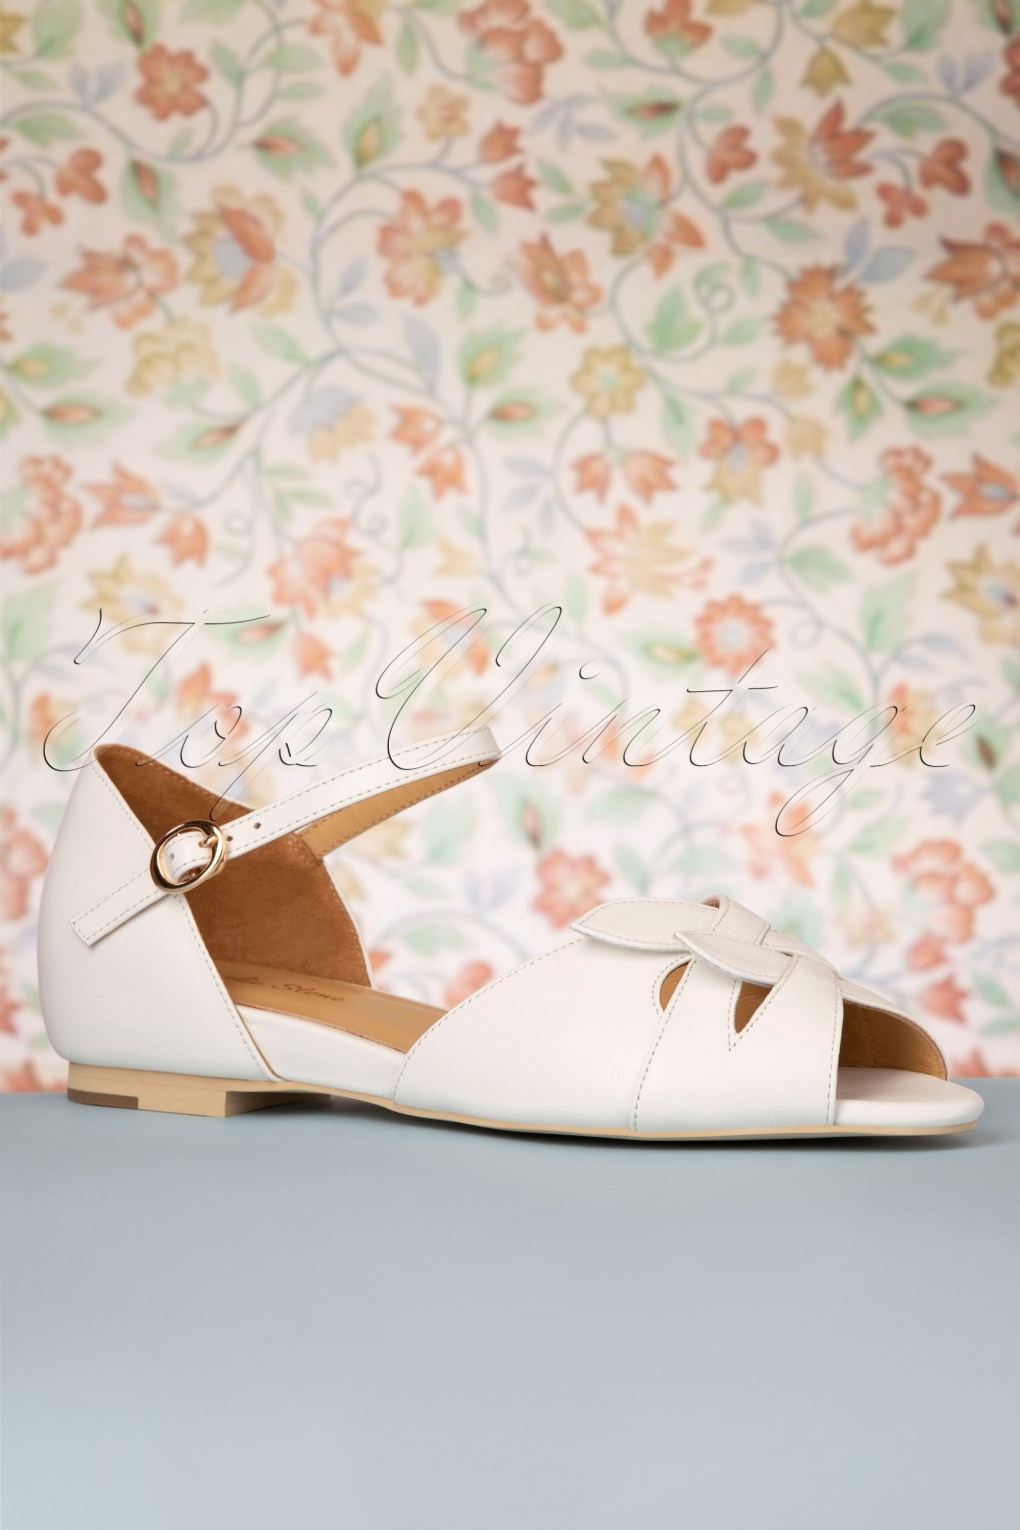 1950s Style Shoes | Heels, Flats, Boots 50s Midge Peeptoe Flats in White £19.95 AT vintagedancer.com